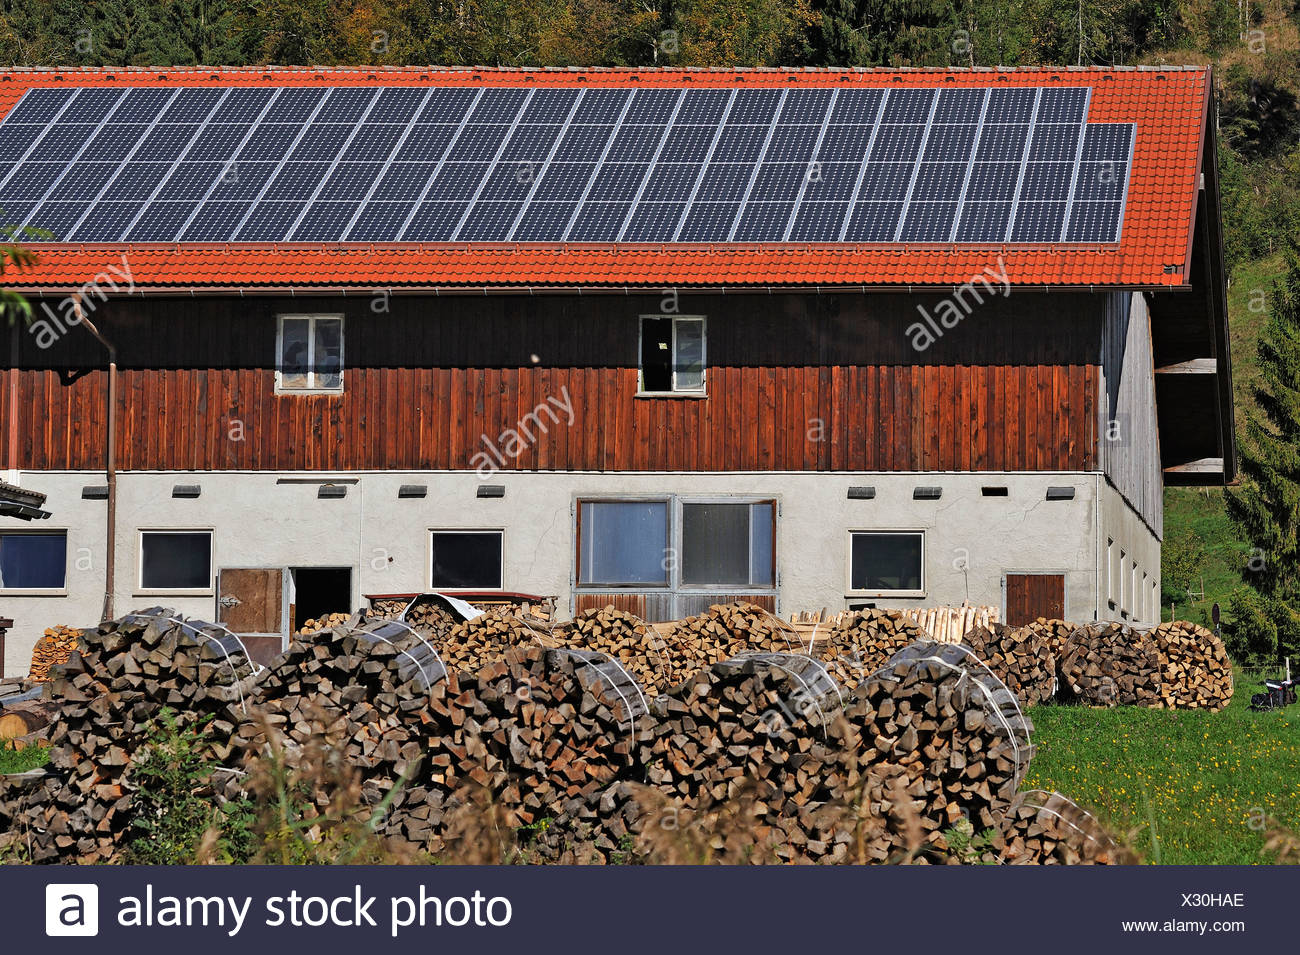 Farm with photovoltaic panels, stacked firewood at the front, Reuterhof farm near Bühl am Alpsee, Oberallgäu, Bavaria, Germany - Stock Image